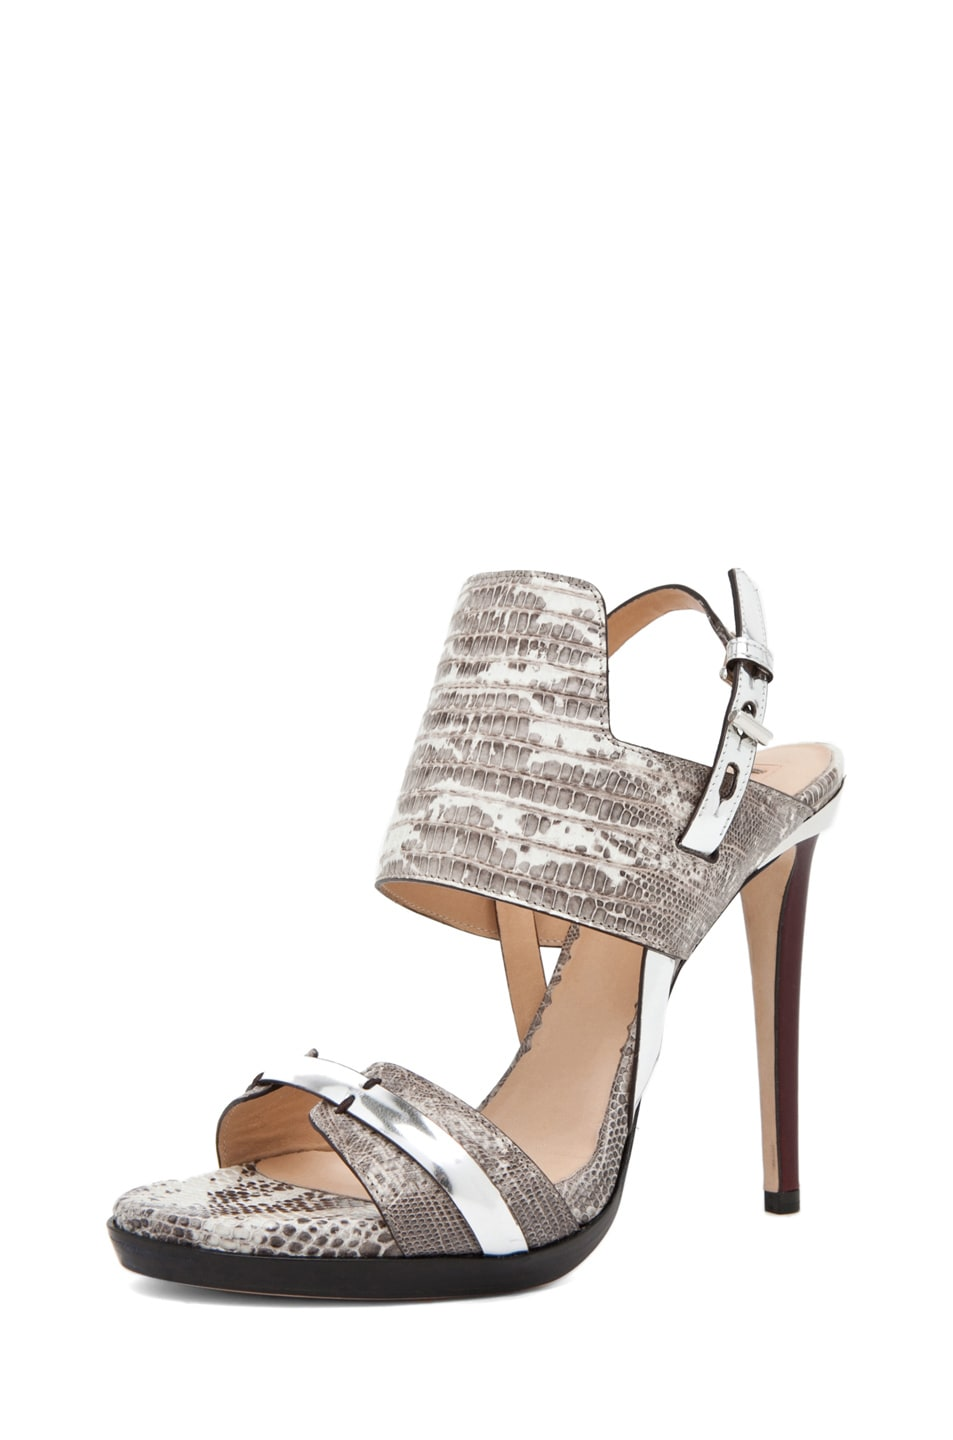 Image 2 of Reed Krakoff Heel in Black Multi/Silver/Cordovan